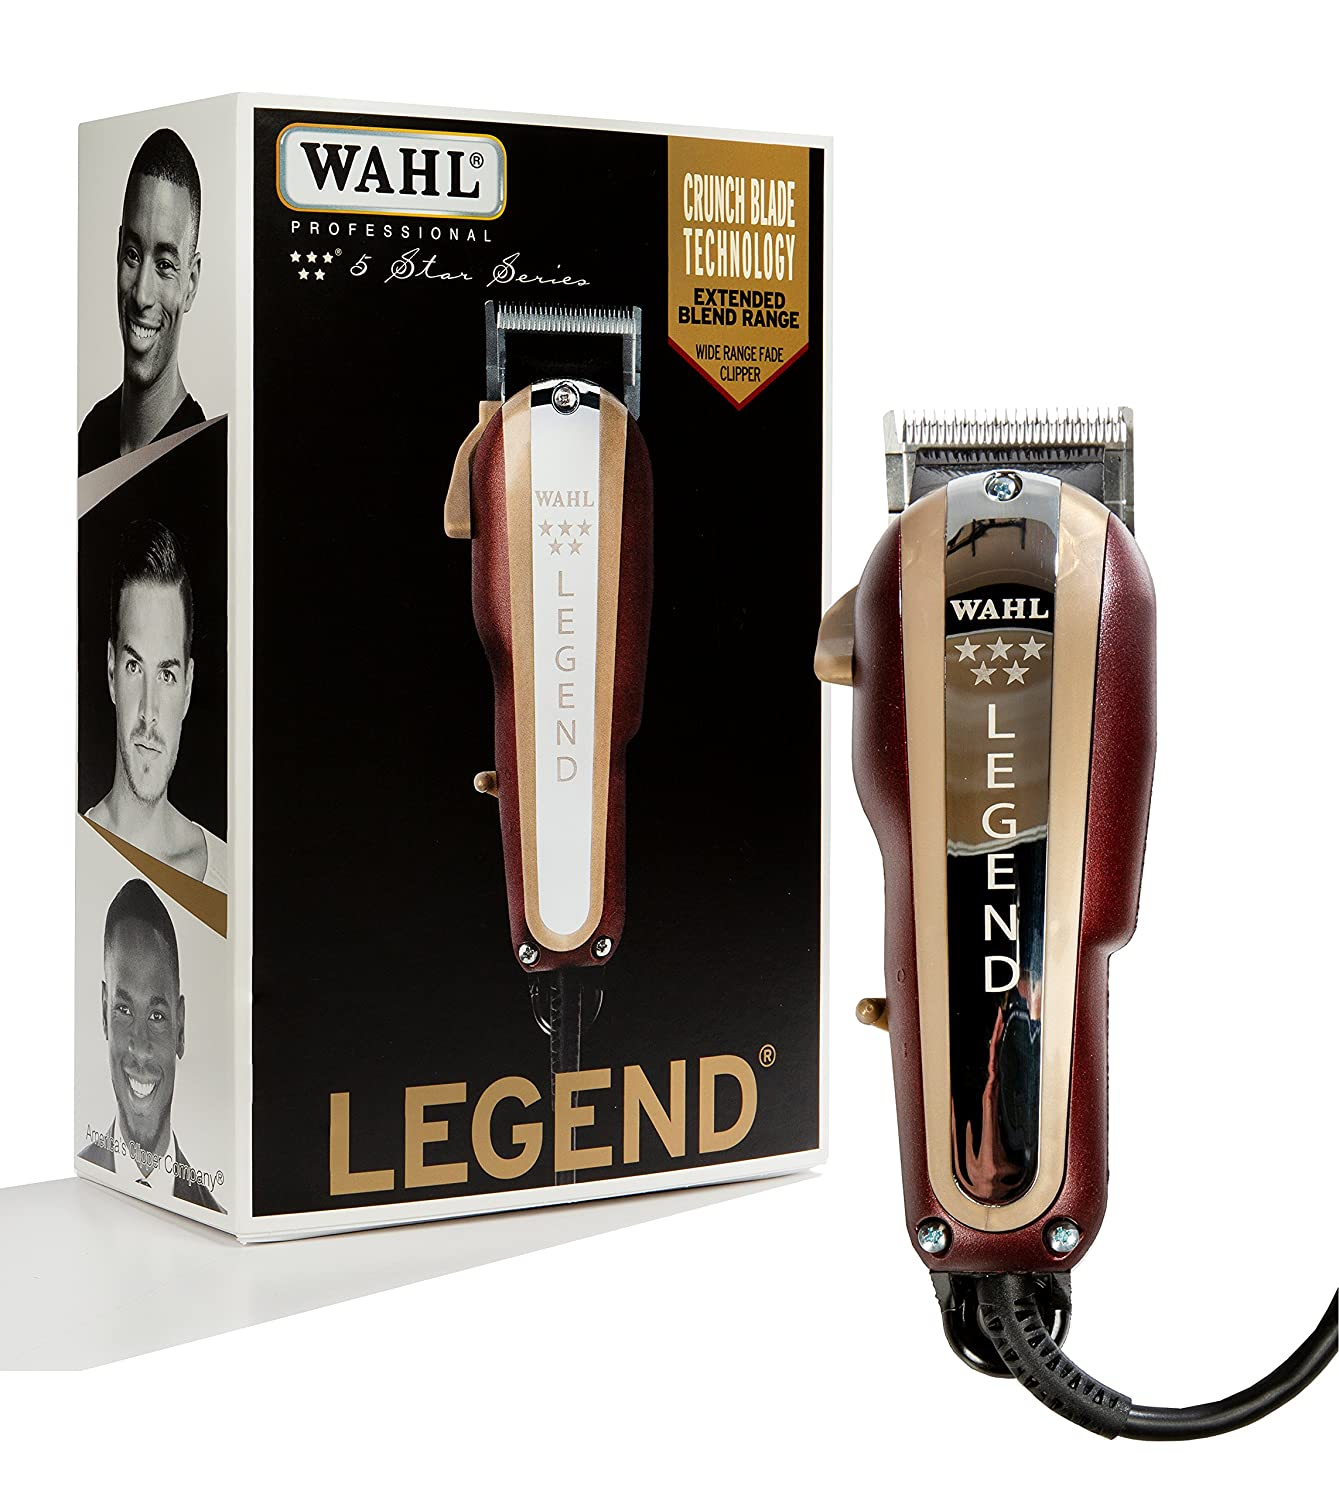 Wahl Professional 5-Star #8147 Seattle New Orleans Mall Mall Clipper Legend